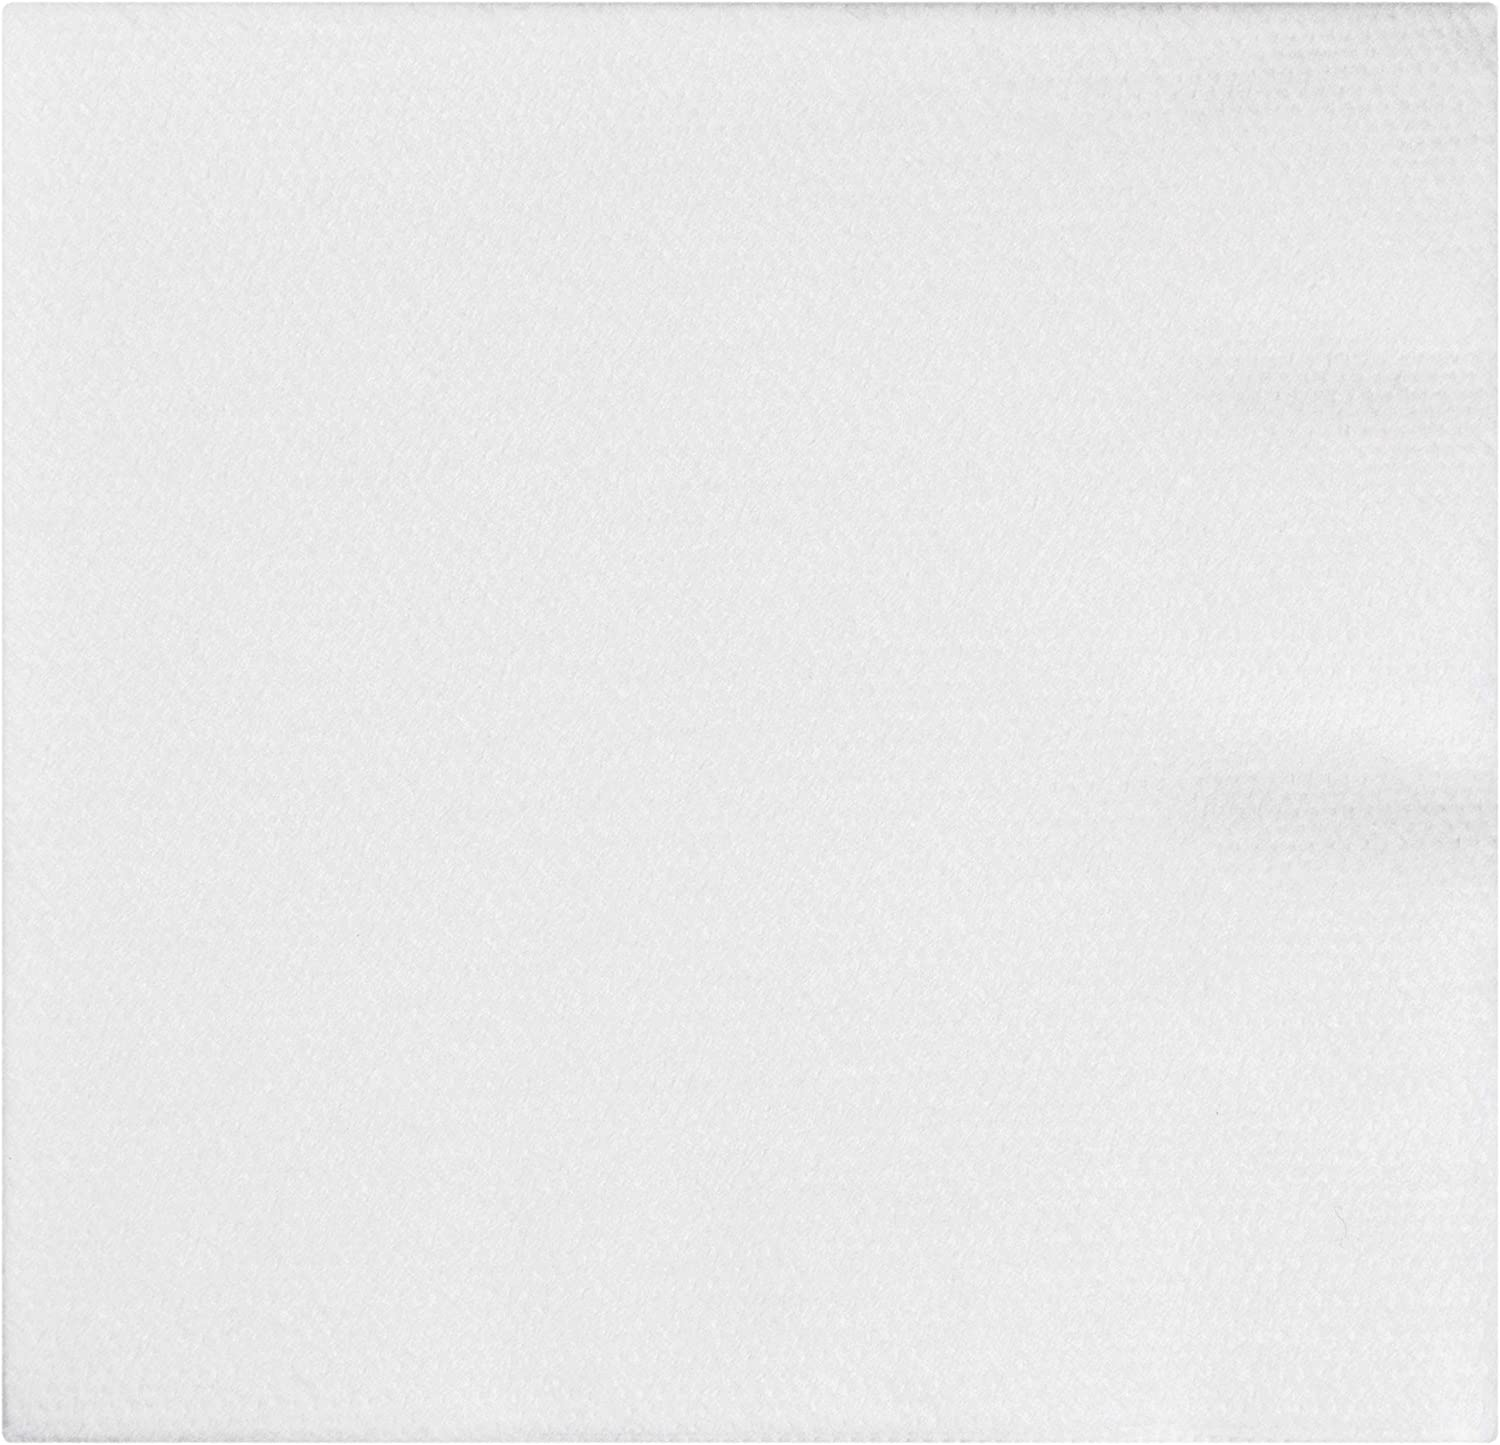 Creative Converting 613272 24 Count Form & Function Better Than Linen Beverage Napkins, Any, White